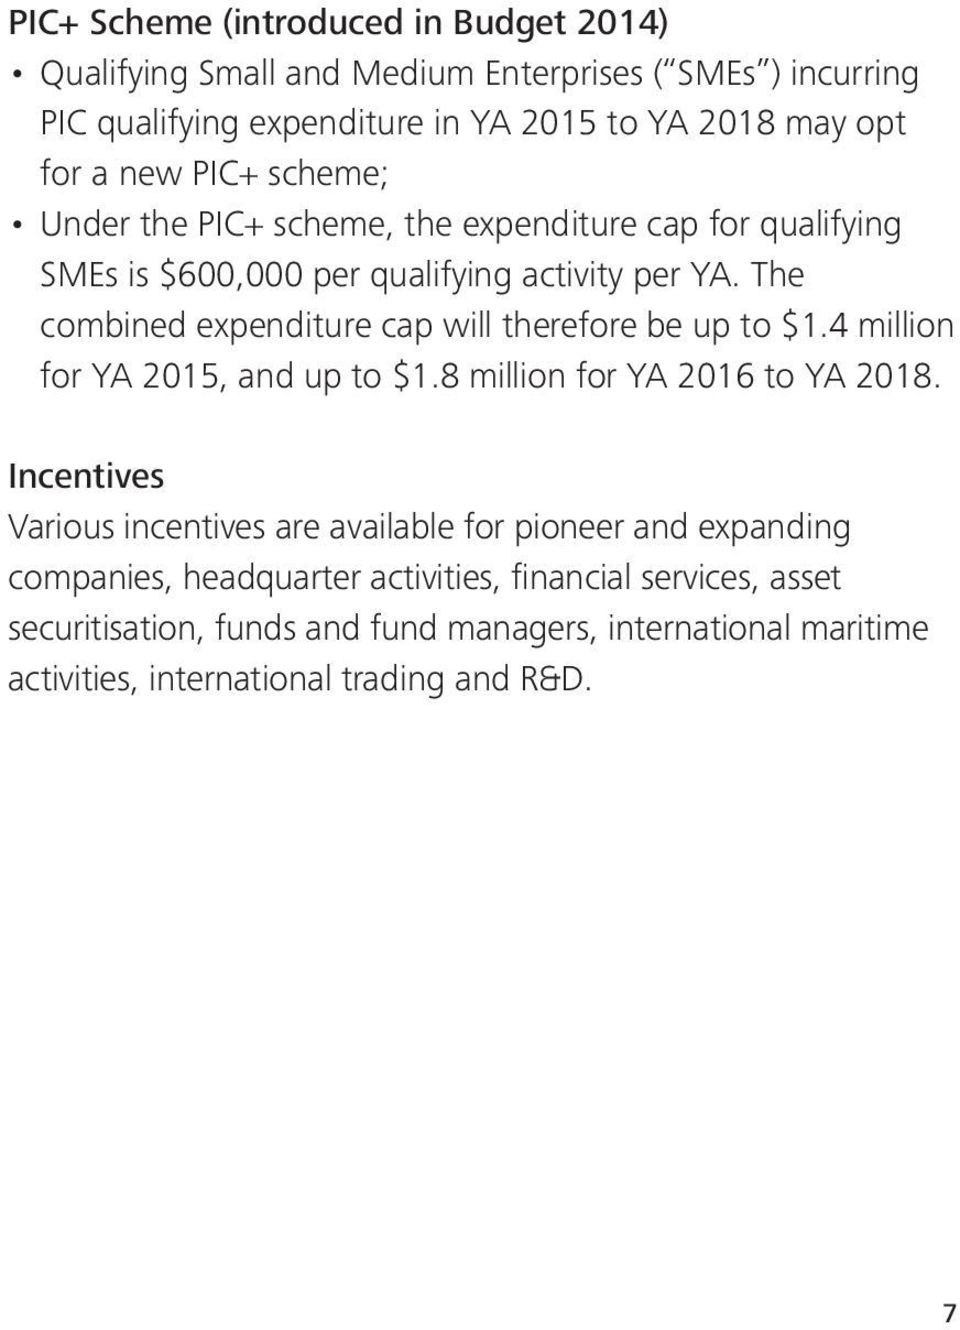 The combined expenditure cap will therefore be up to $1.4 million for YA 2015, and up to $1.8 million for YA 2016 to YA 2018.